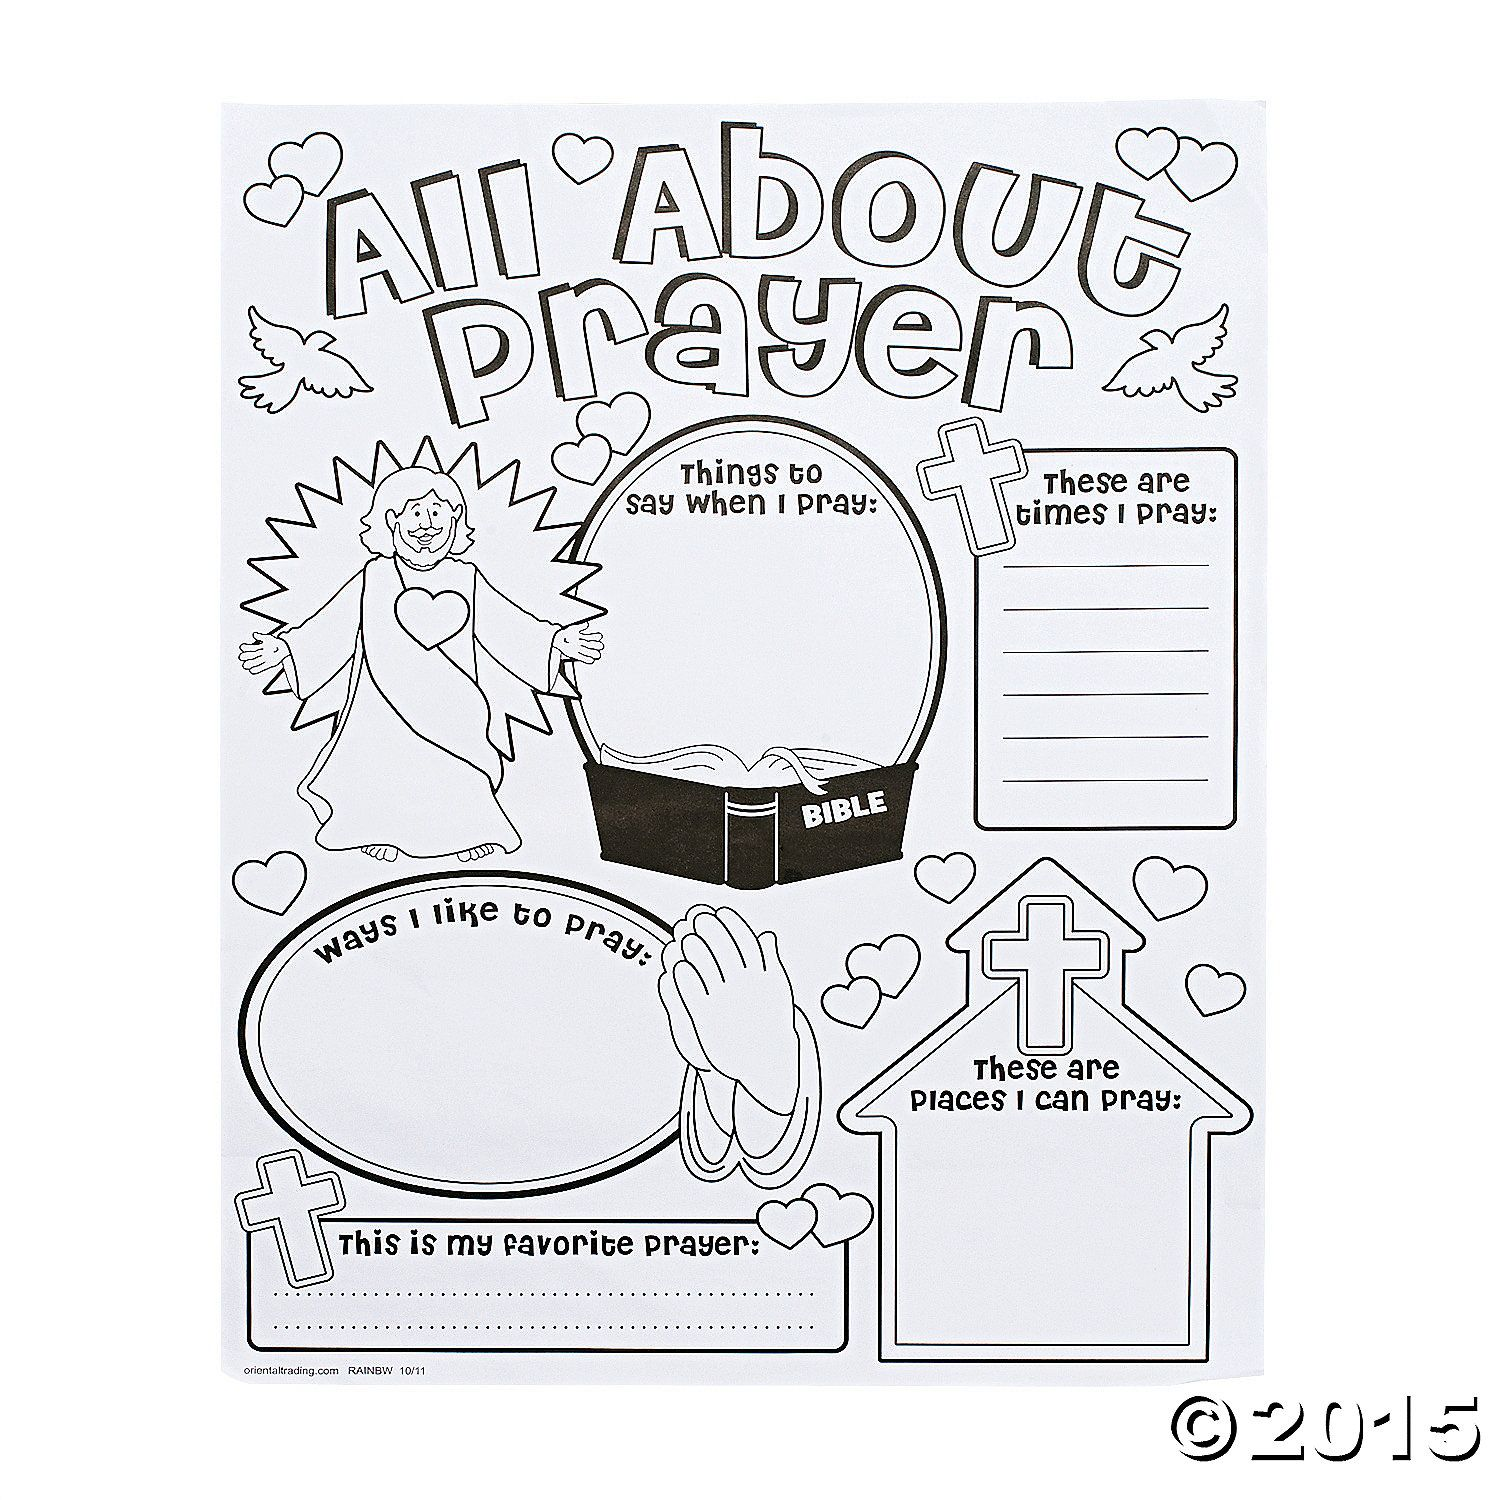 Papers on prayer